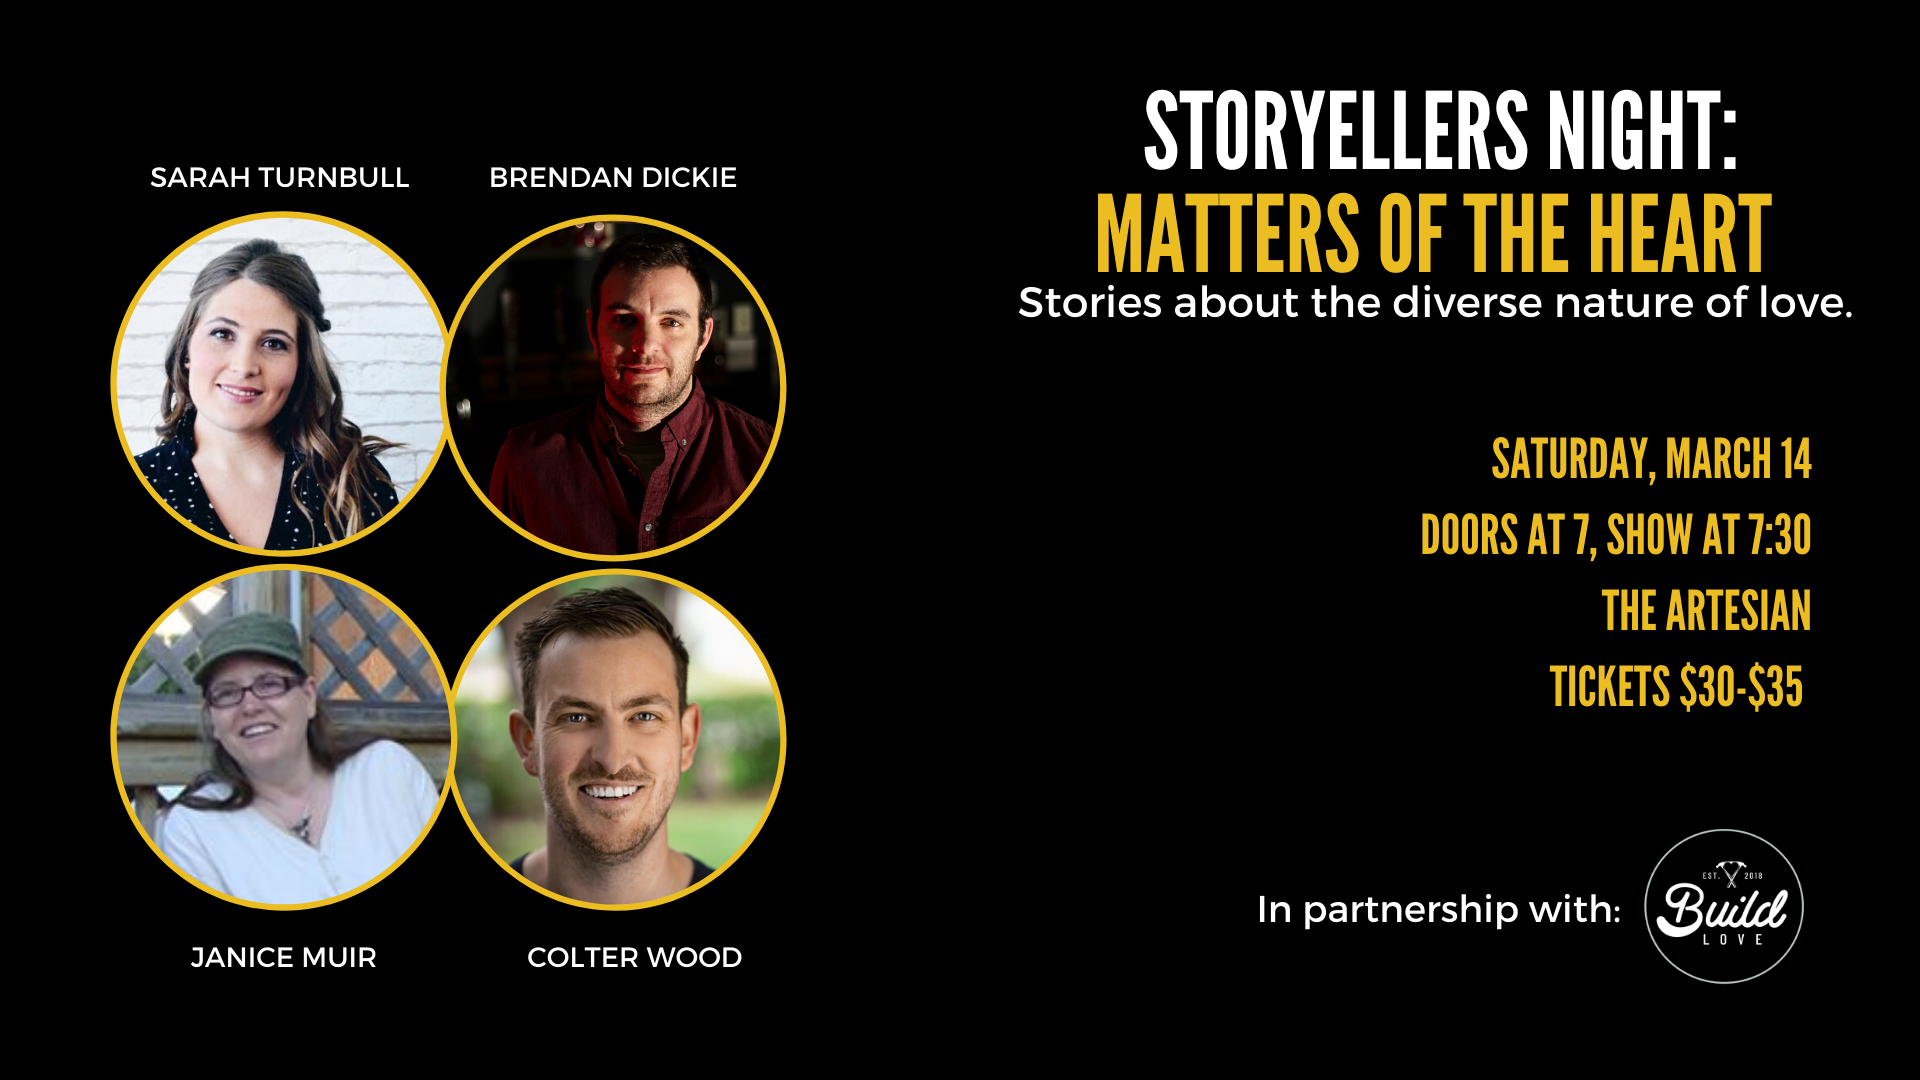 POSTPONED - Storytellers Night: Matters of the Heart - Stories about the diverse nature of love.